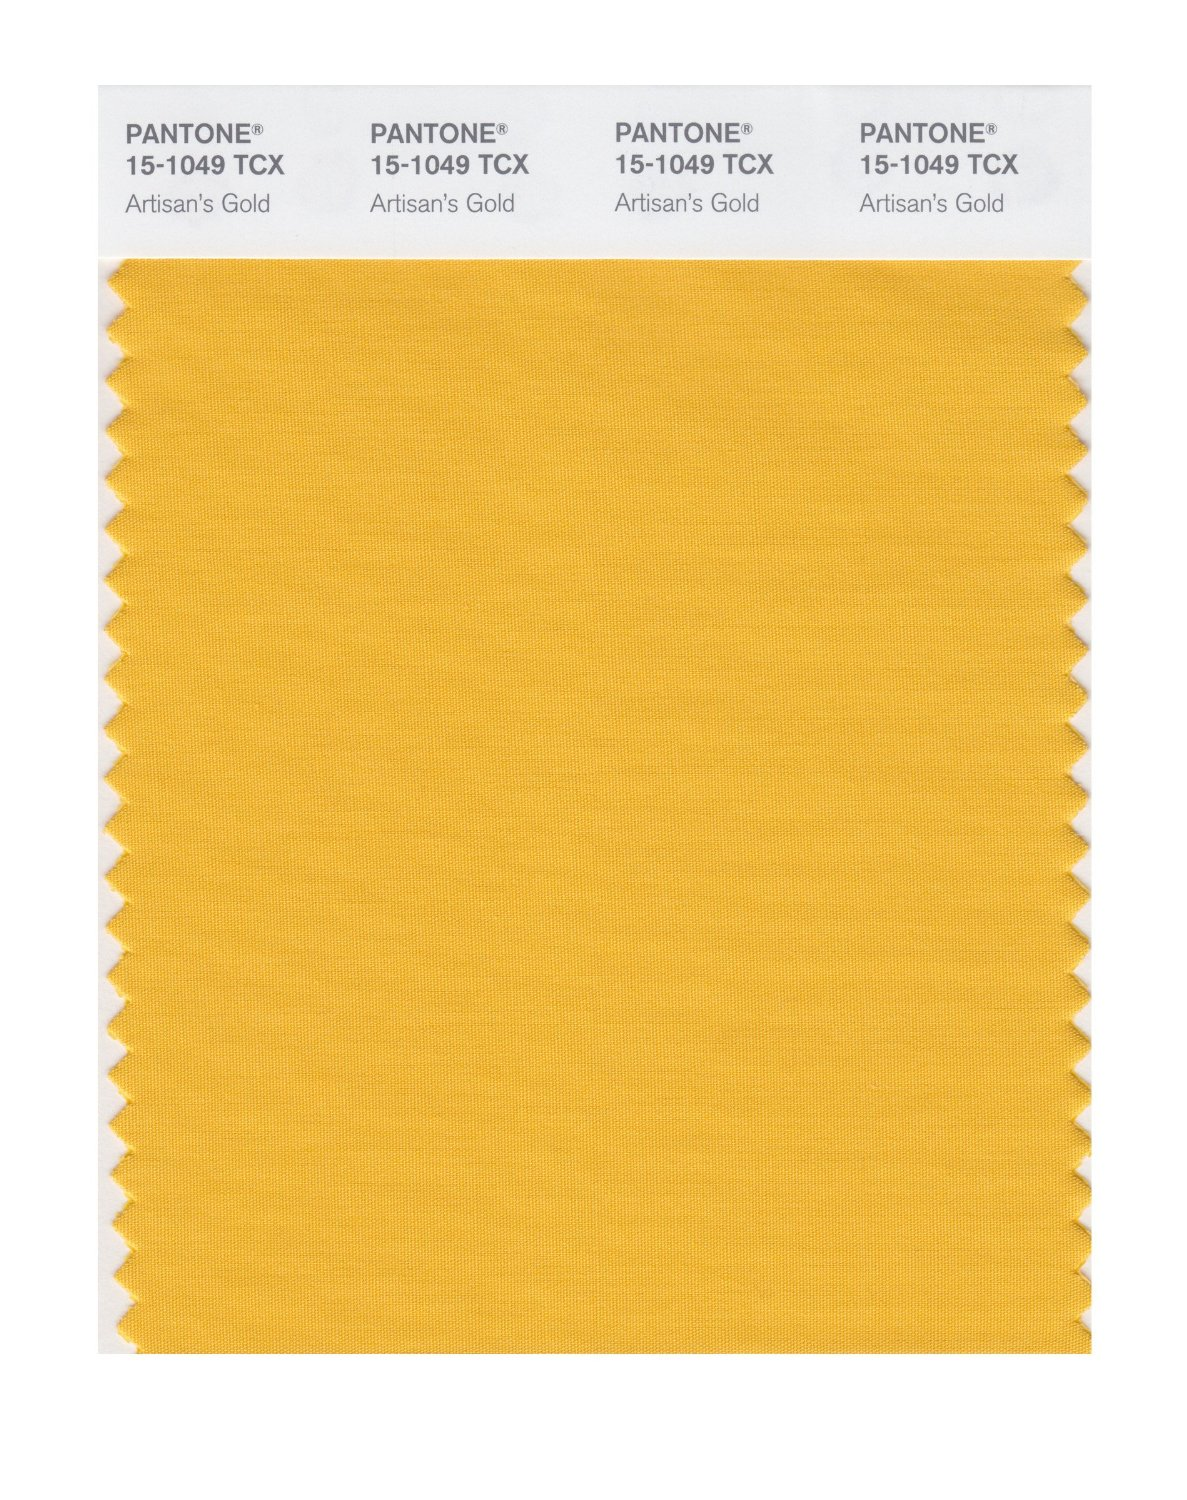 Pantone Smart Swatch 15-1049 Artisan's Gold